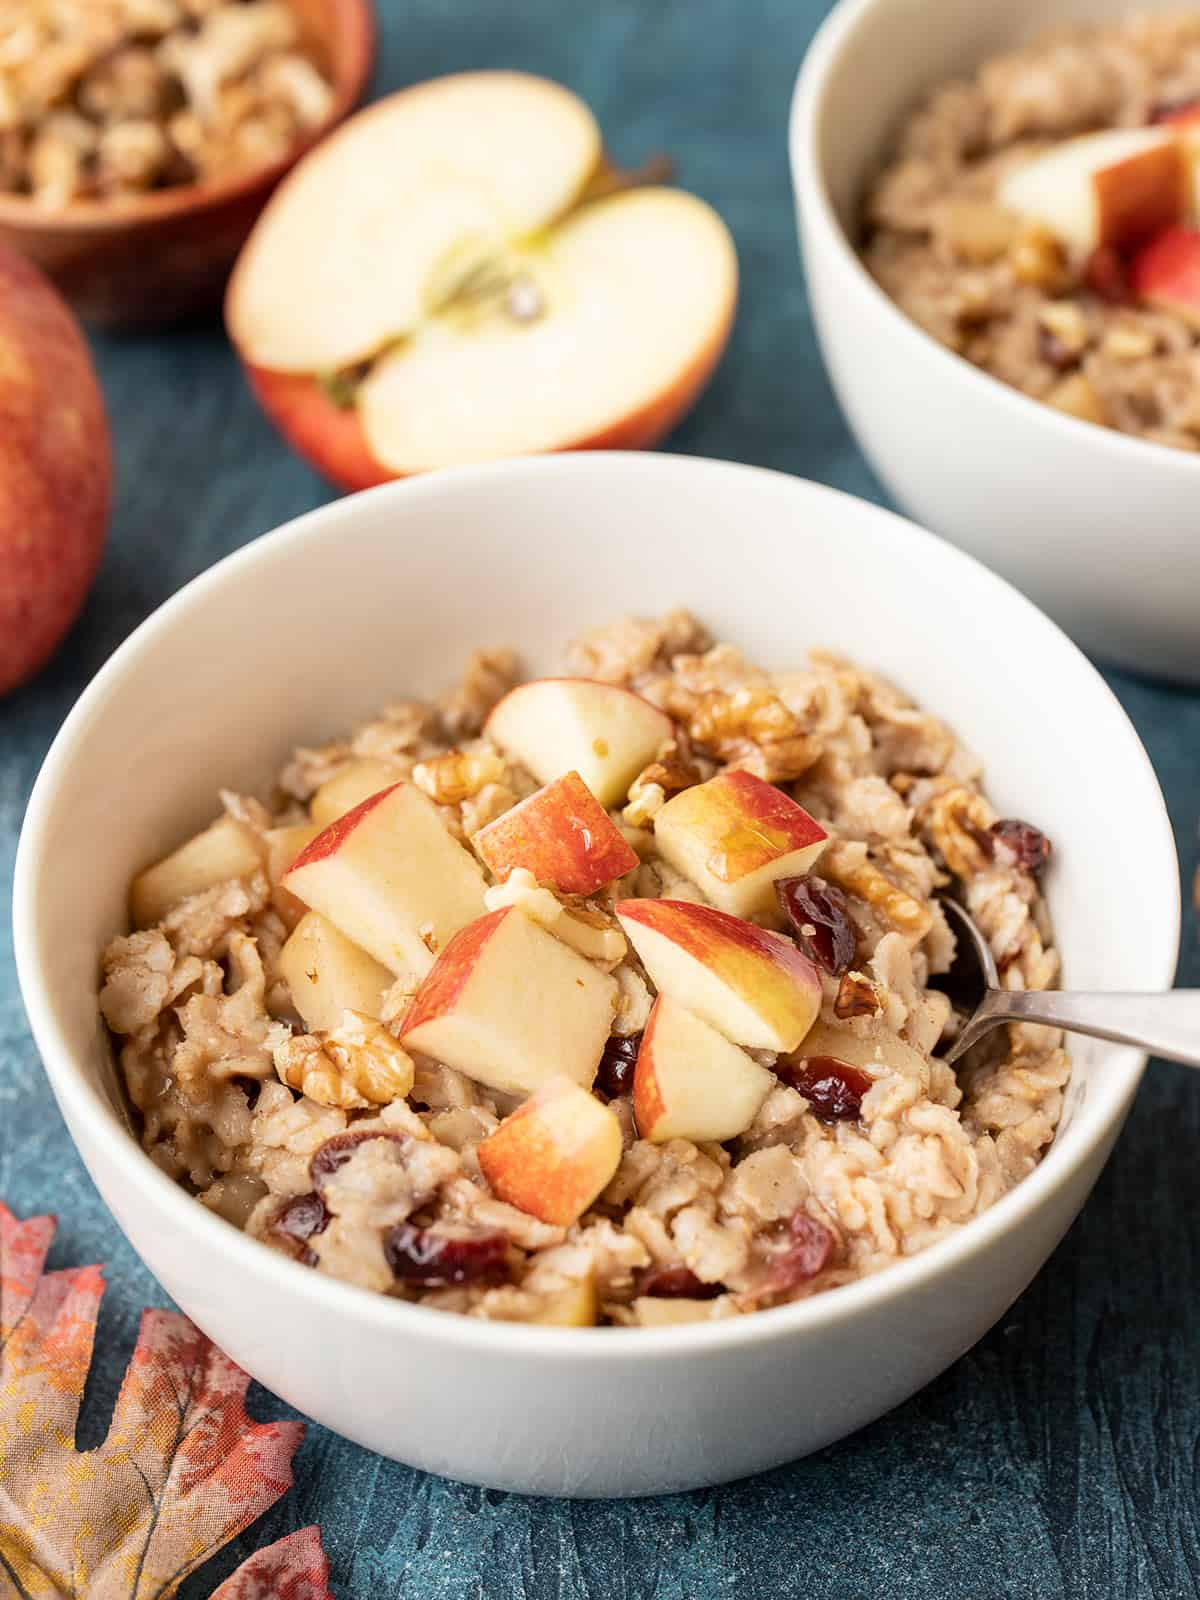 Side view of two bowls of autumn fruit and nut oatmeal